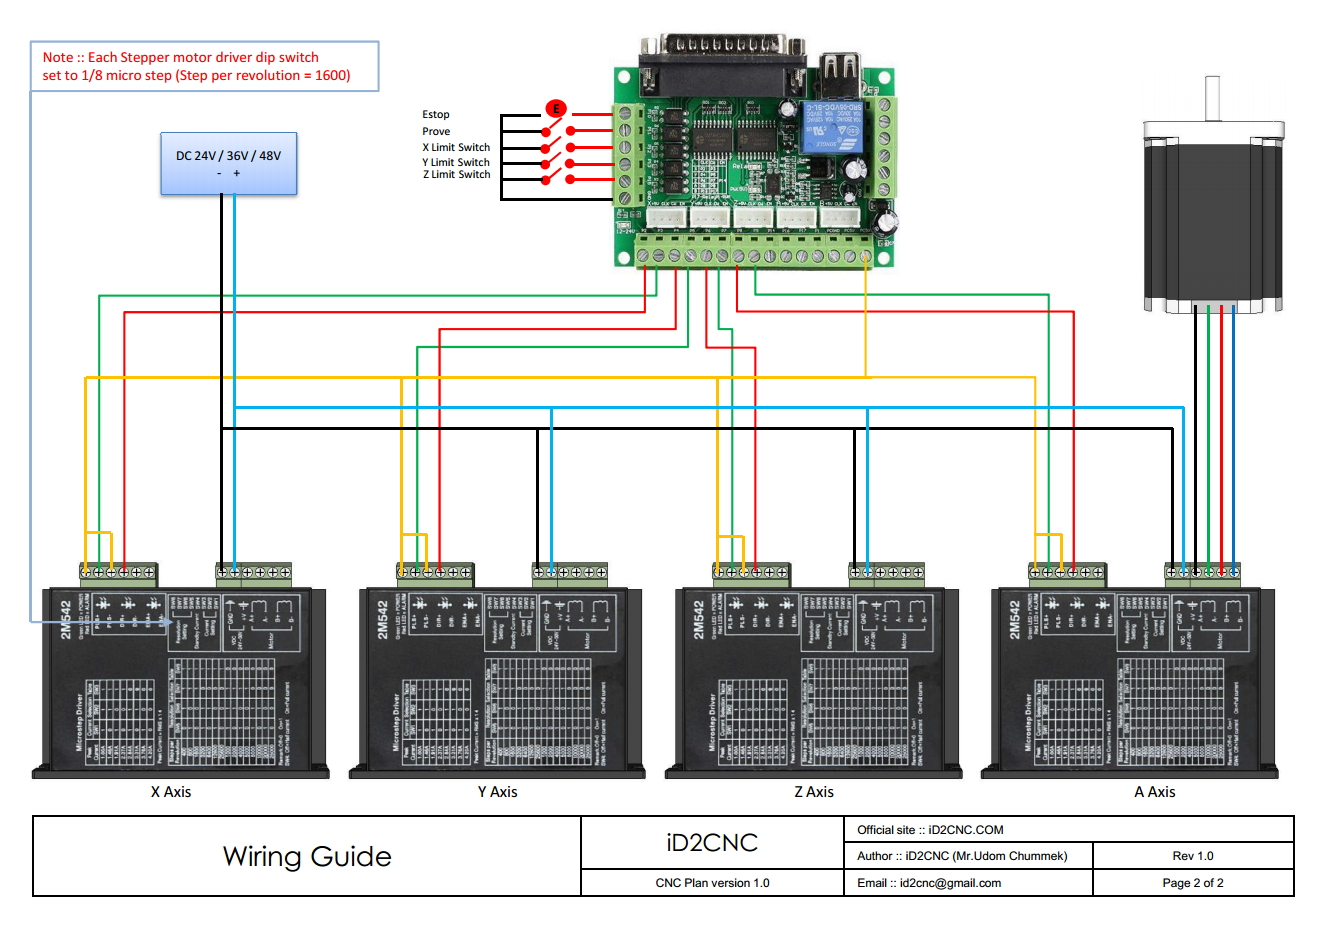 image 8?w=778 d i y cnc id2cnc cnc wiring diagram at edmiracle.co